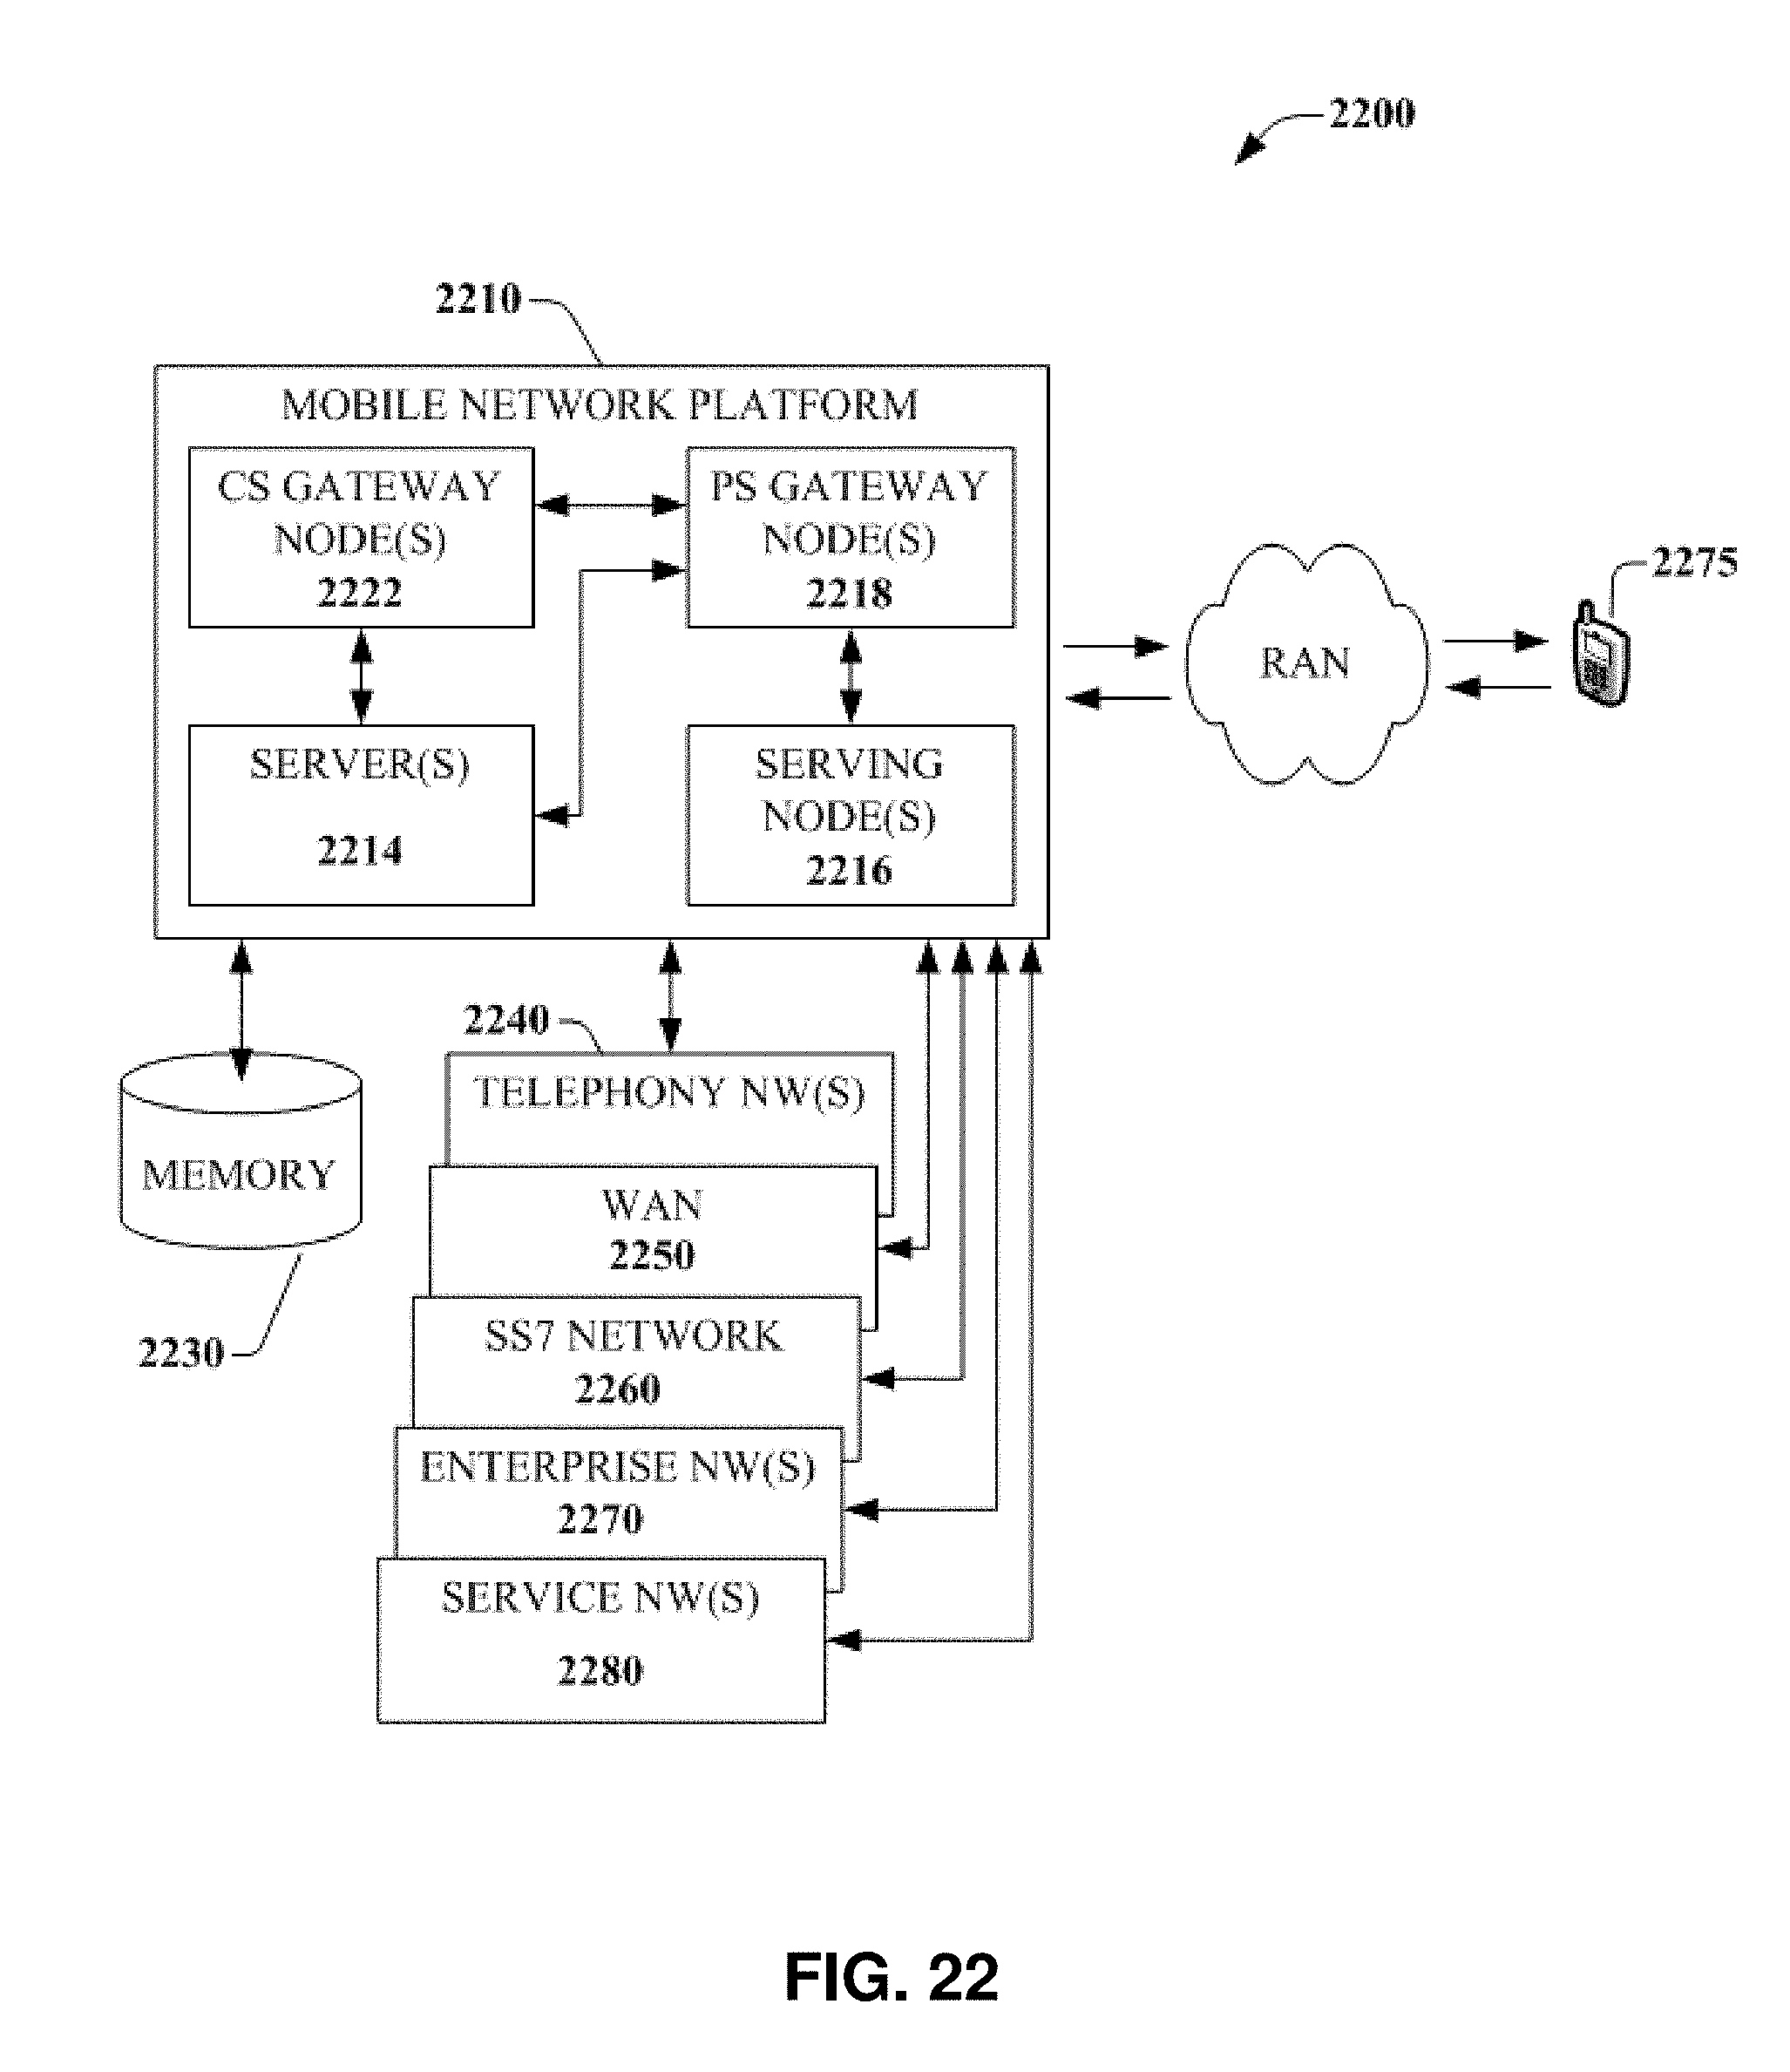 US10243784B2 - System for generating topology information